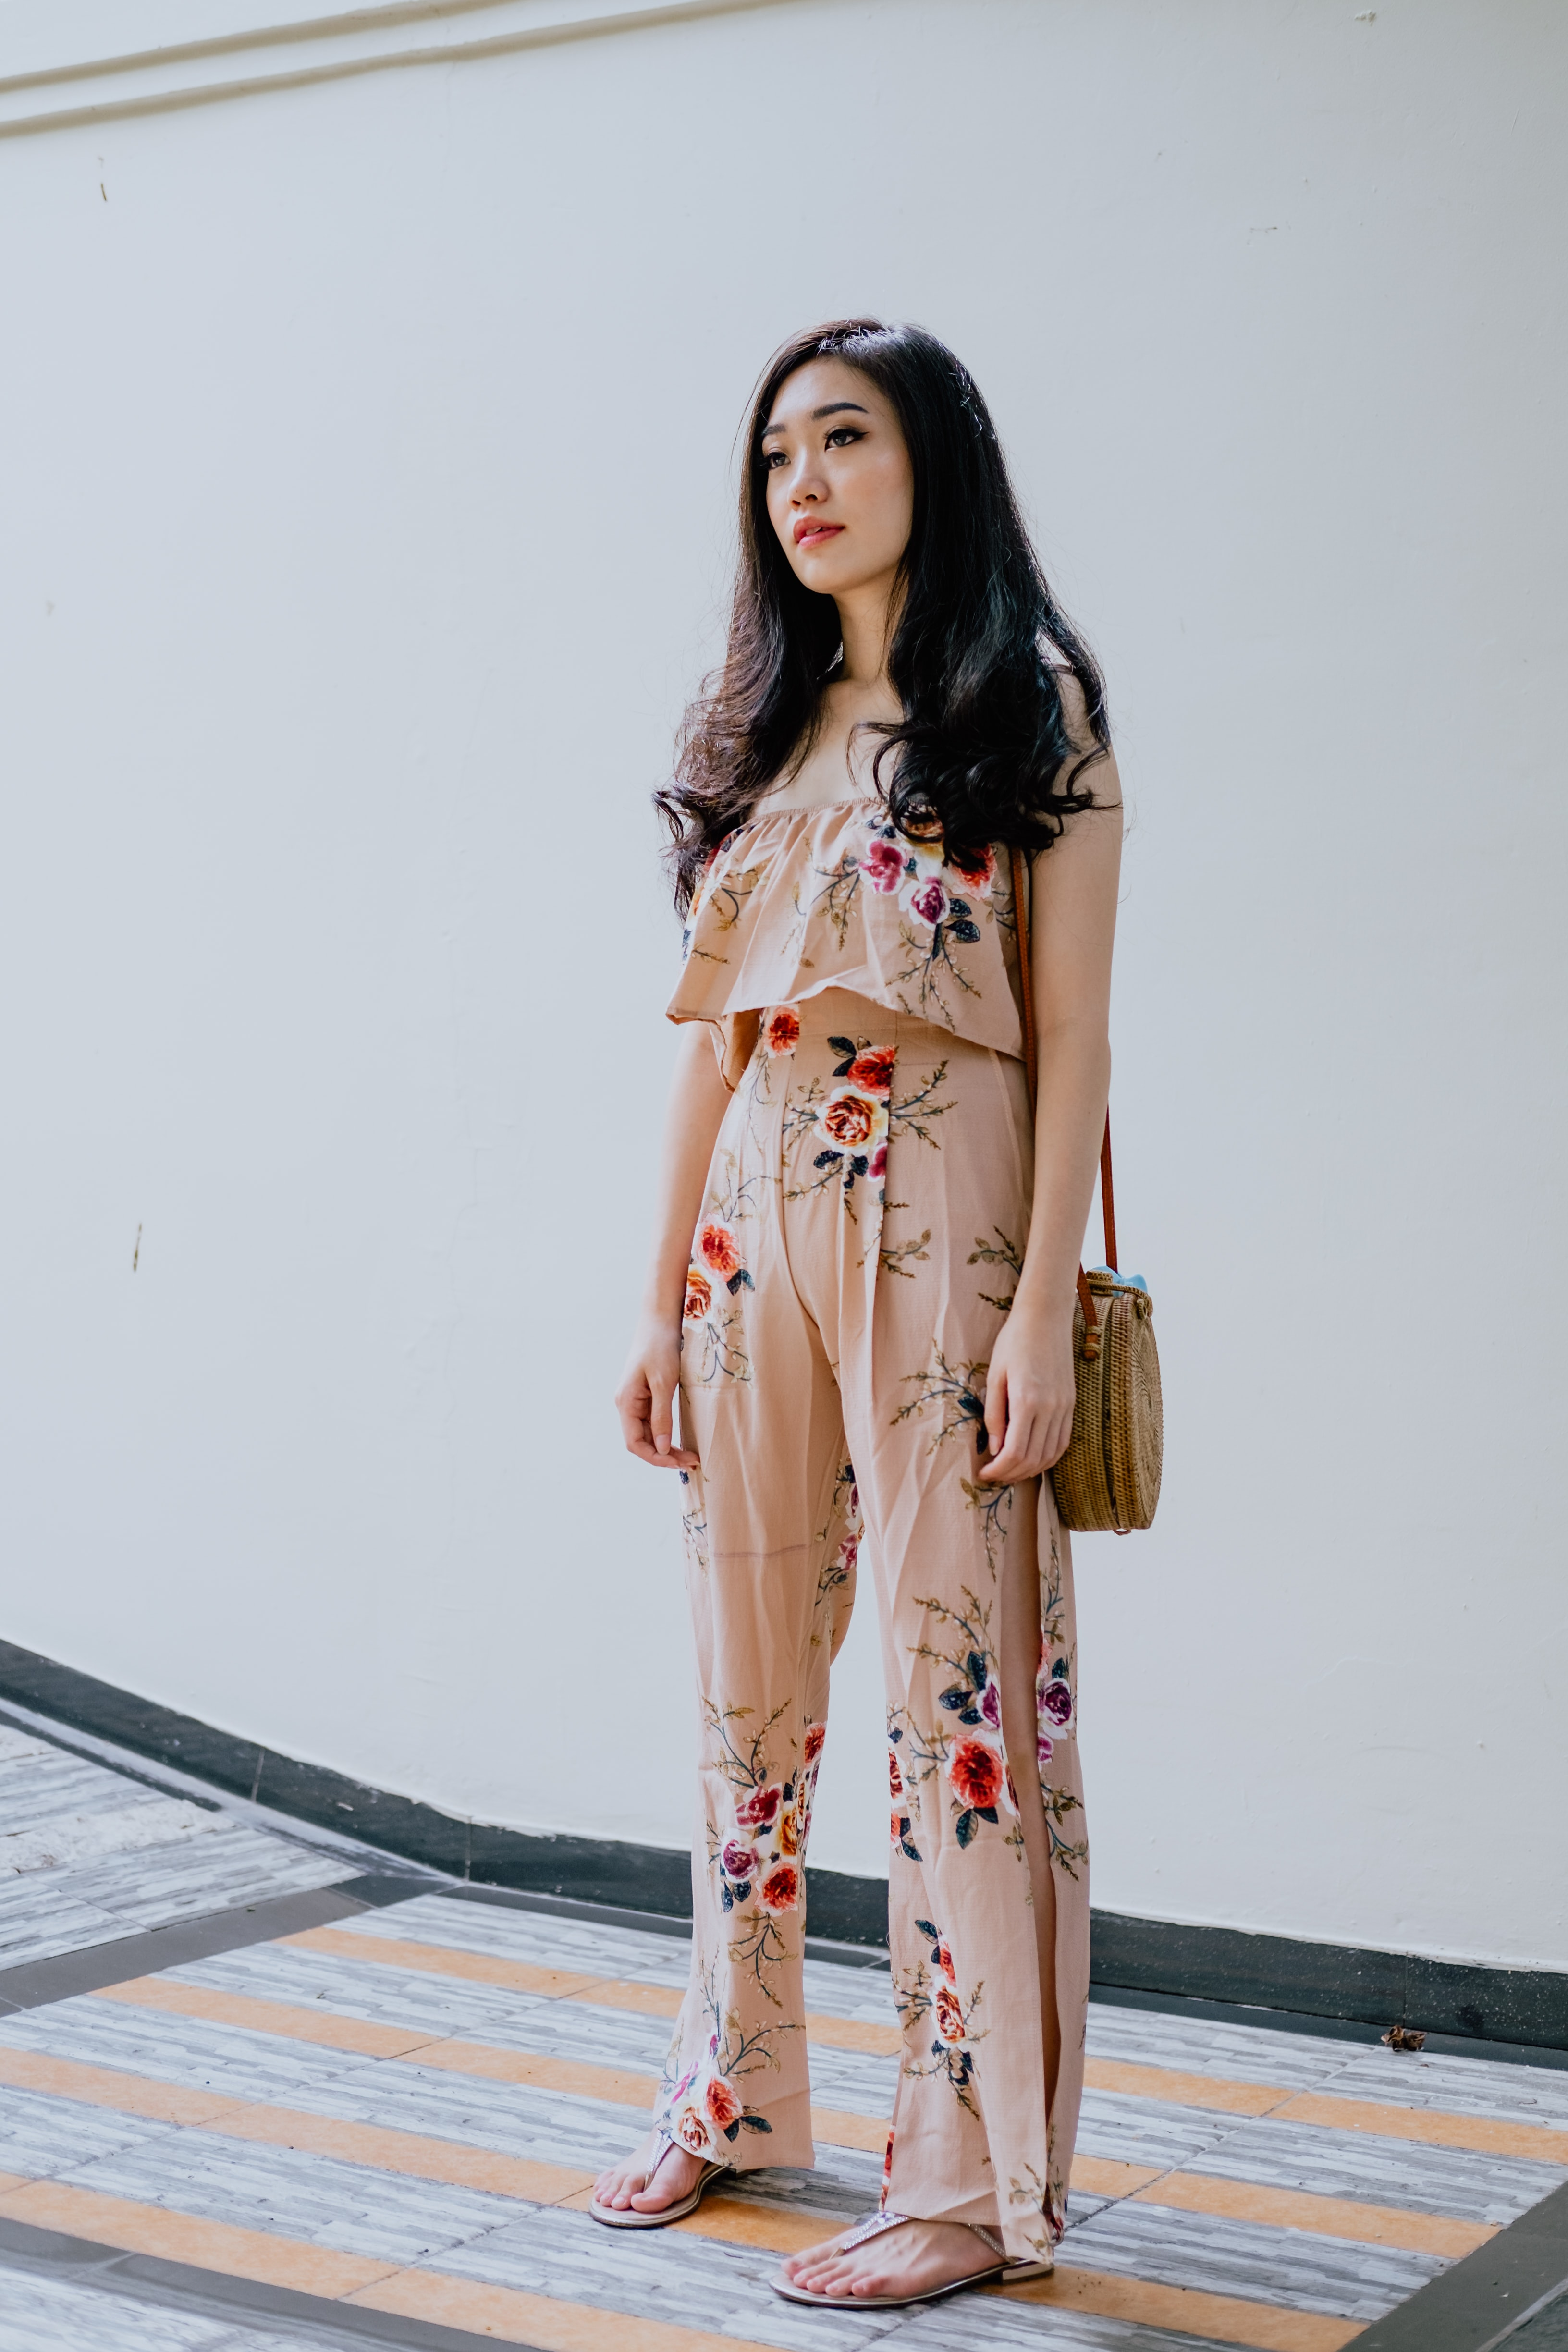 woman wearing beige-and-red floral crop top with pants